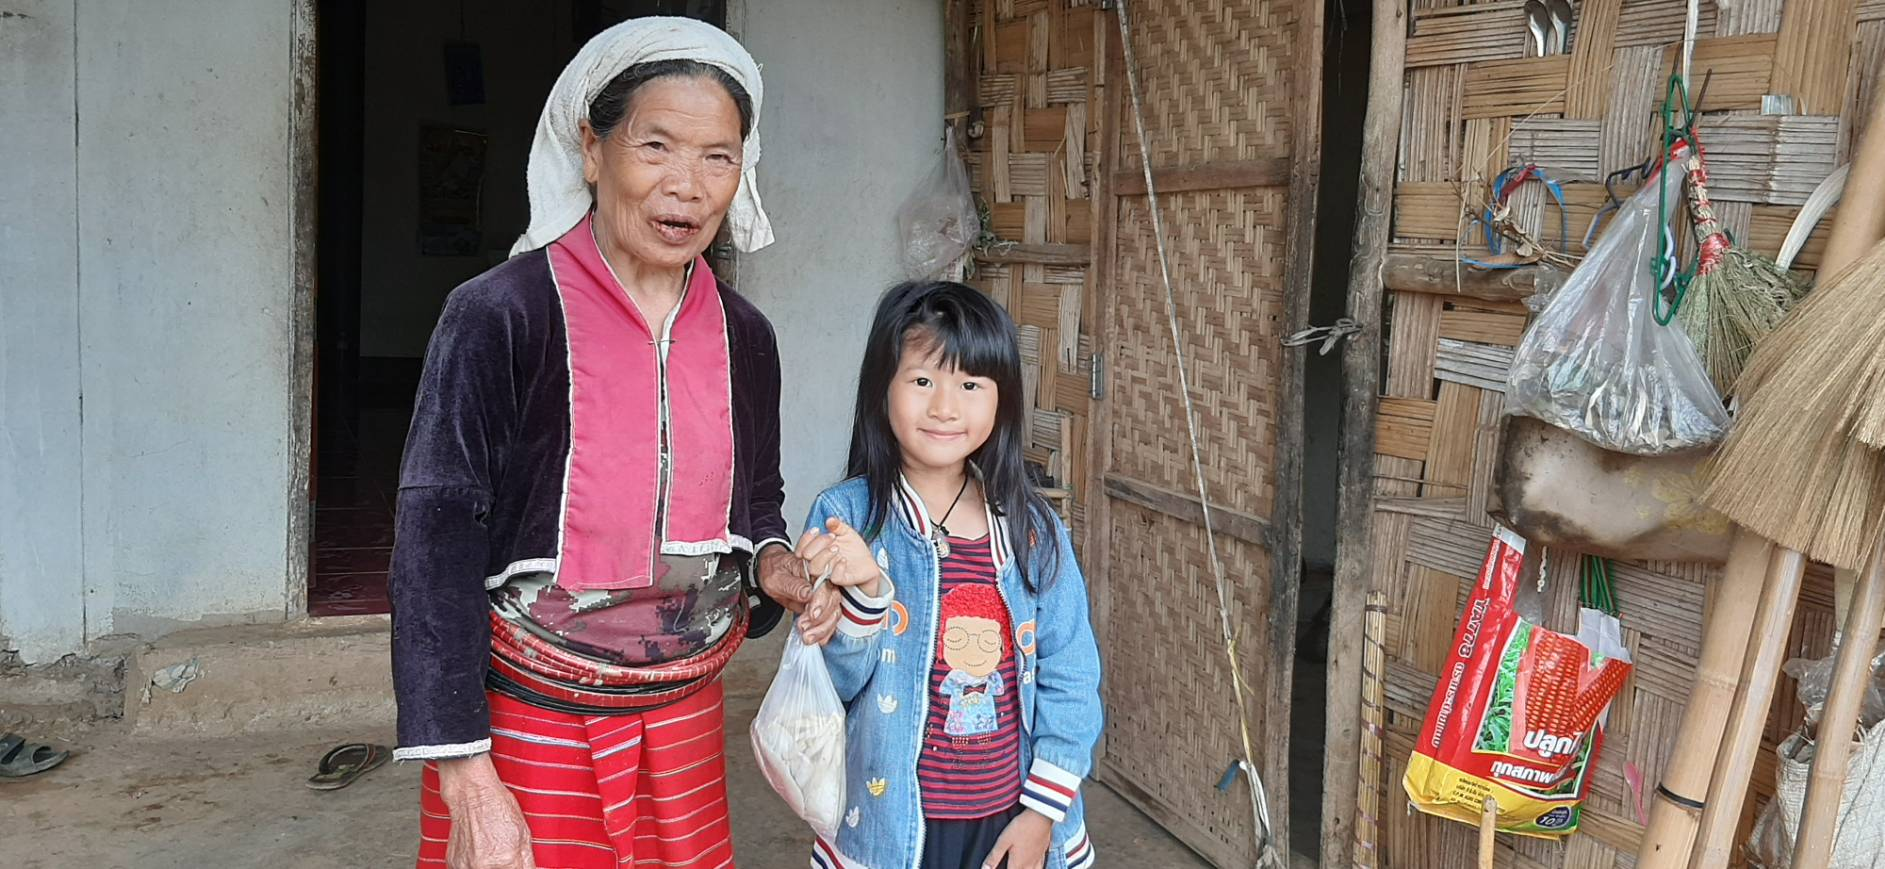 Families in Thailand can be resilient against COVID-19.